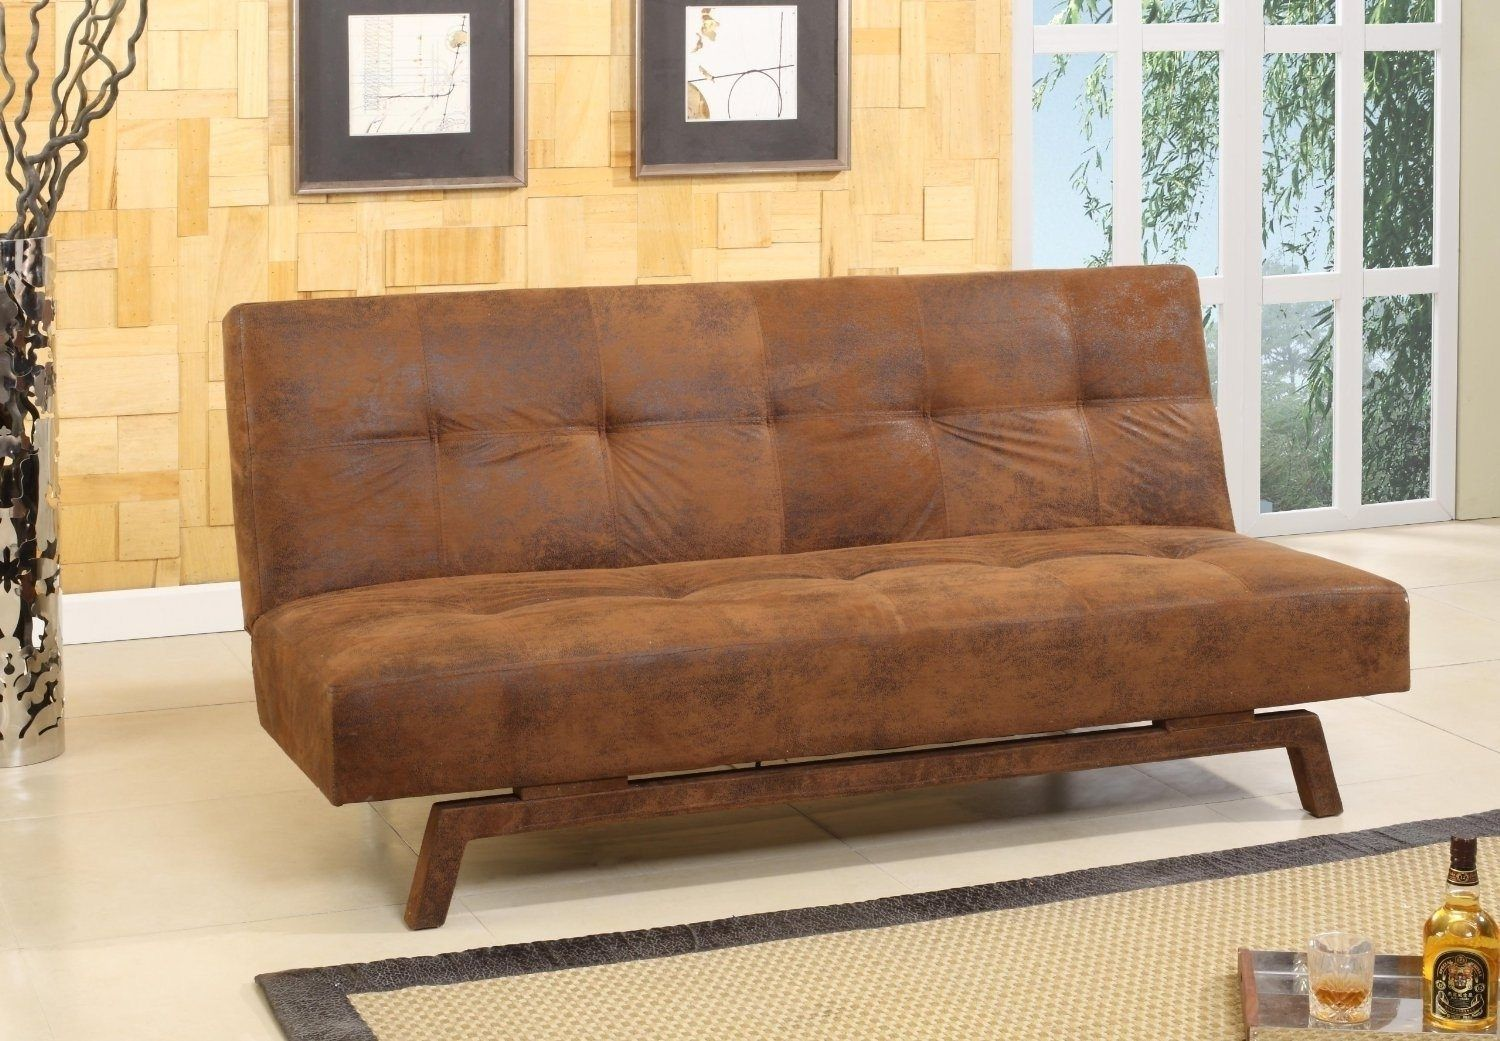 fantastic american leather sleeper sofa reviews architecture-Sensational American Leather Sleeper sofa Reviews Layout